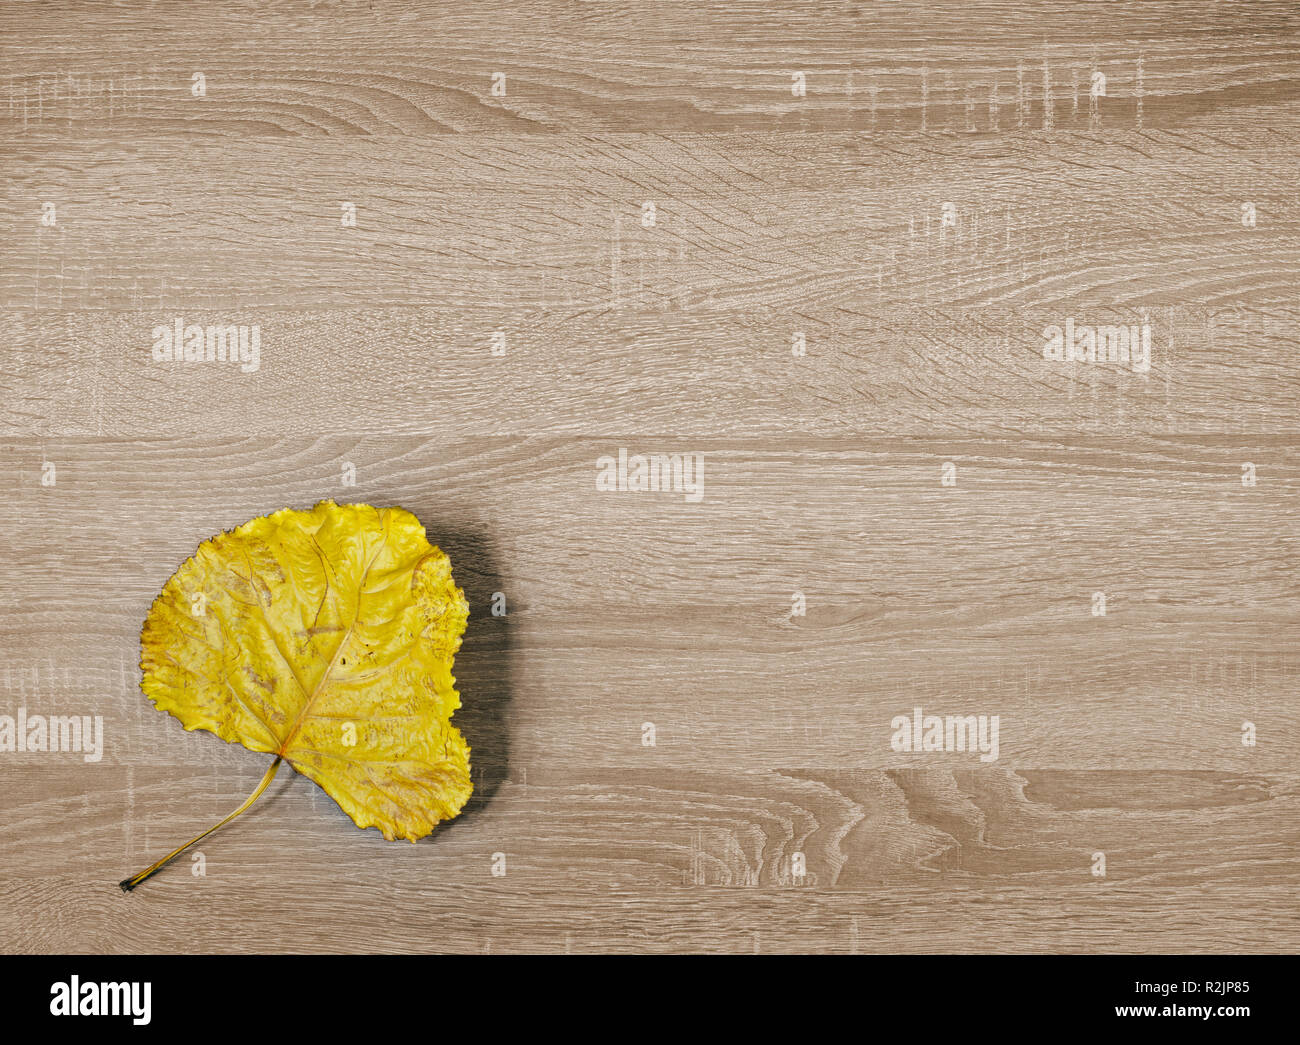 Yellow dry leaf on brown wooden texture background Stock Photo